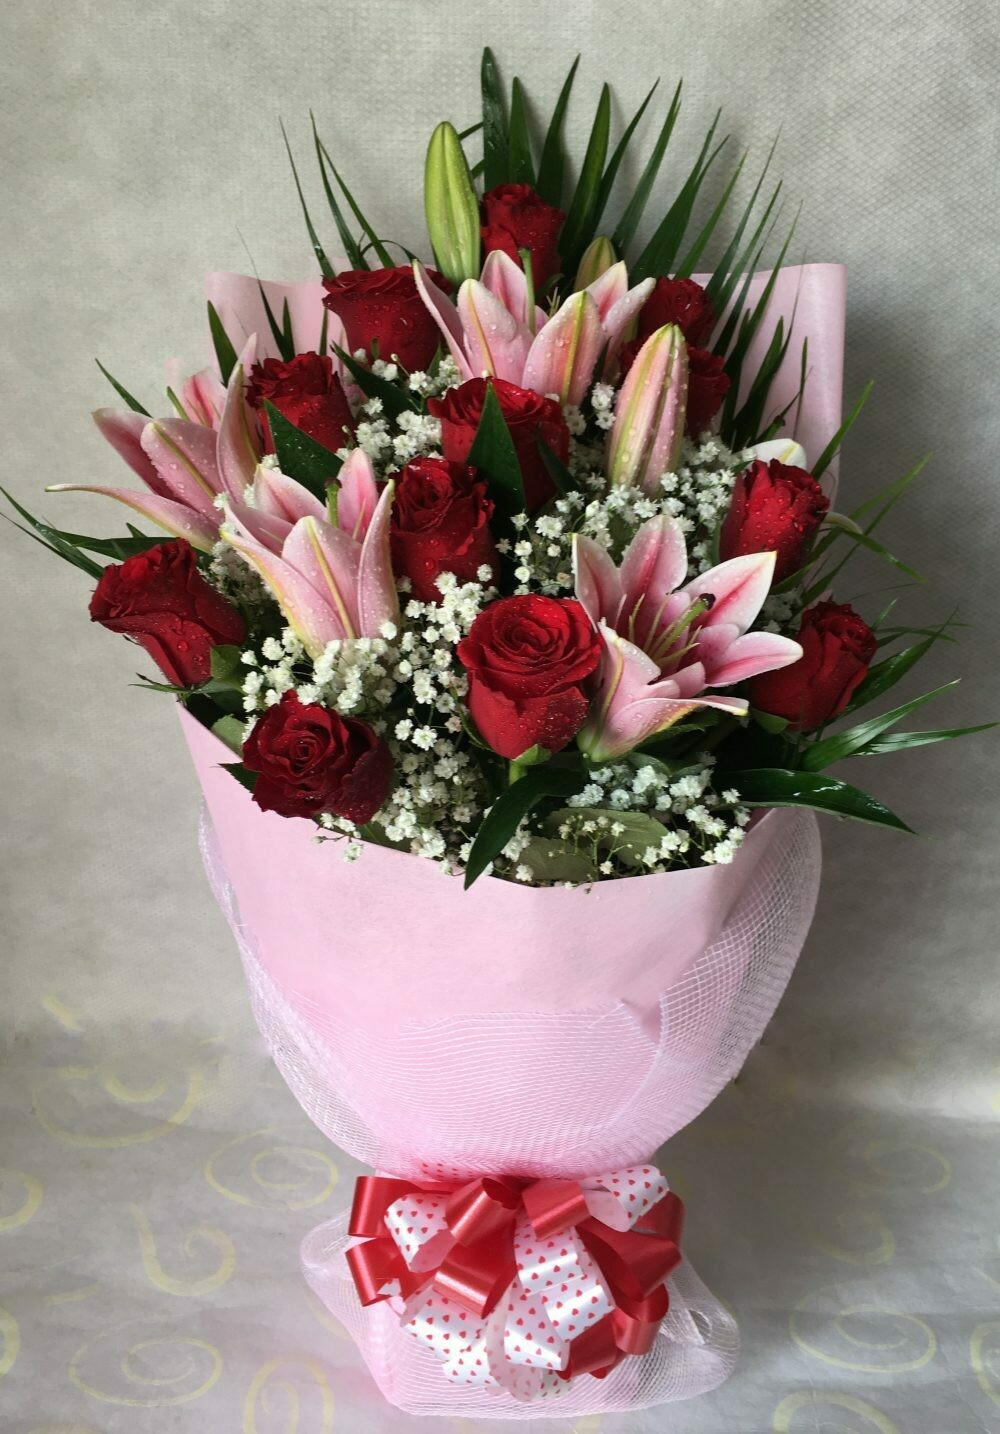 12 Red Roses with 3 lilies